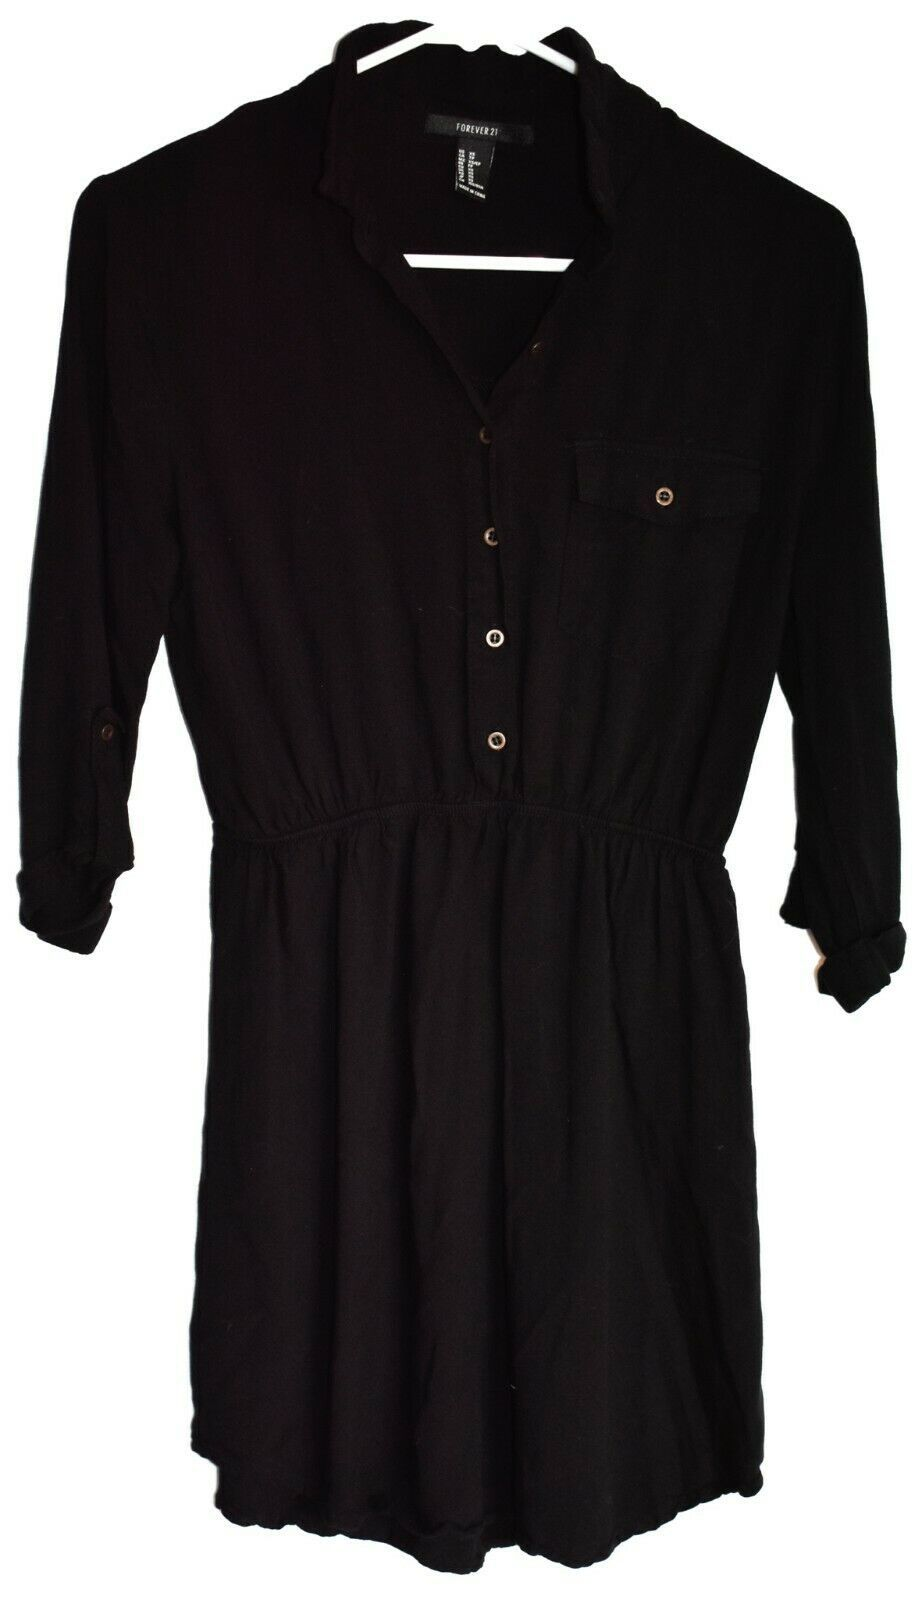 Forever 21 00174473 Casual Knit Jersey Black Dress w Buttons Size XS